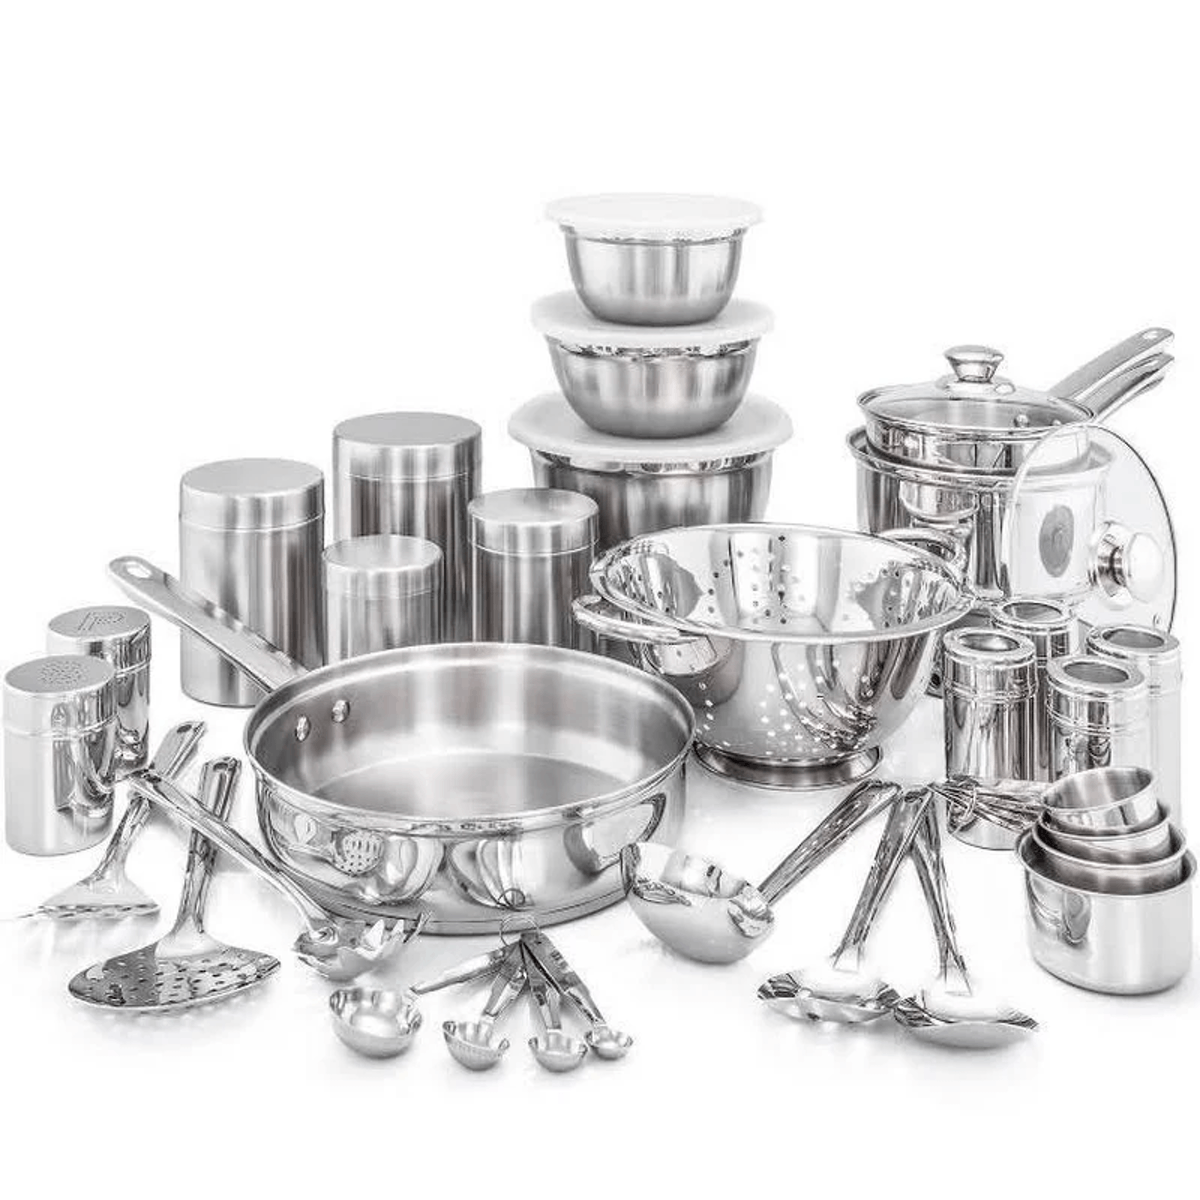 Old Dutch International Kitchen in a Box 36 Piece Stainless Steel Cookware Set, Silver